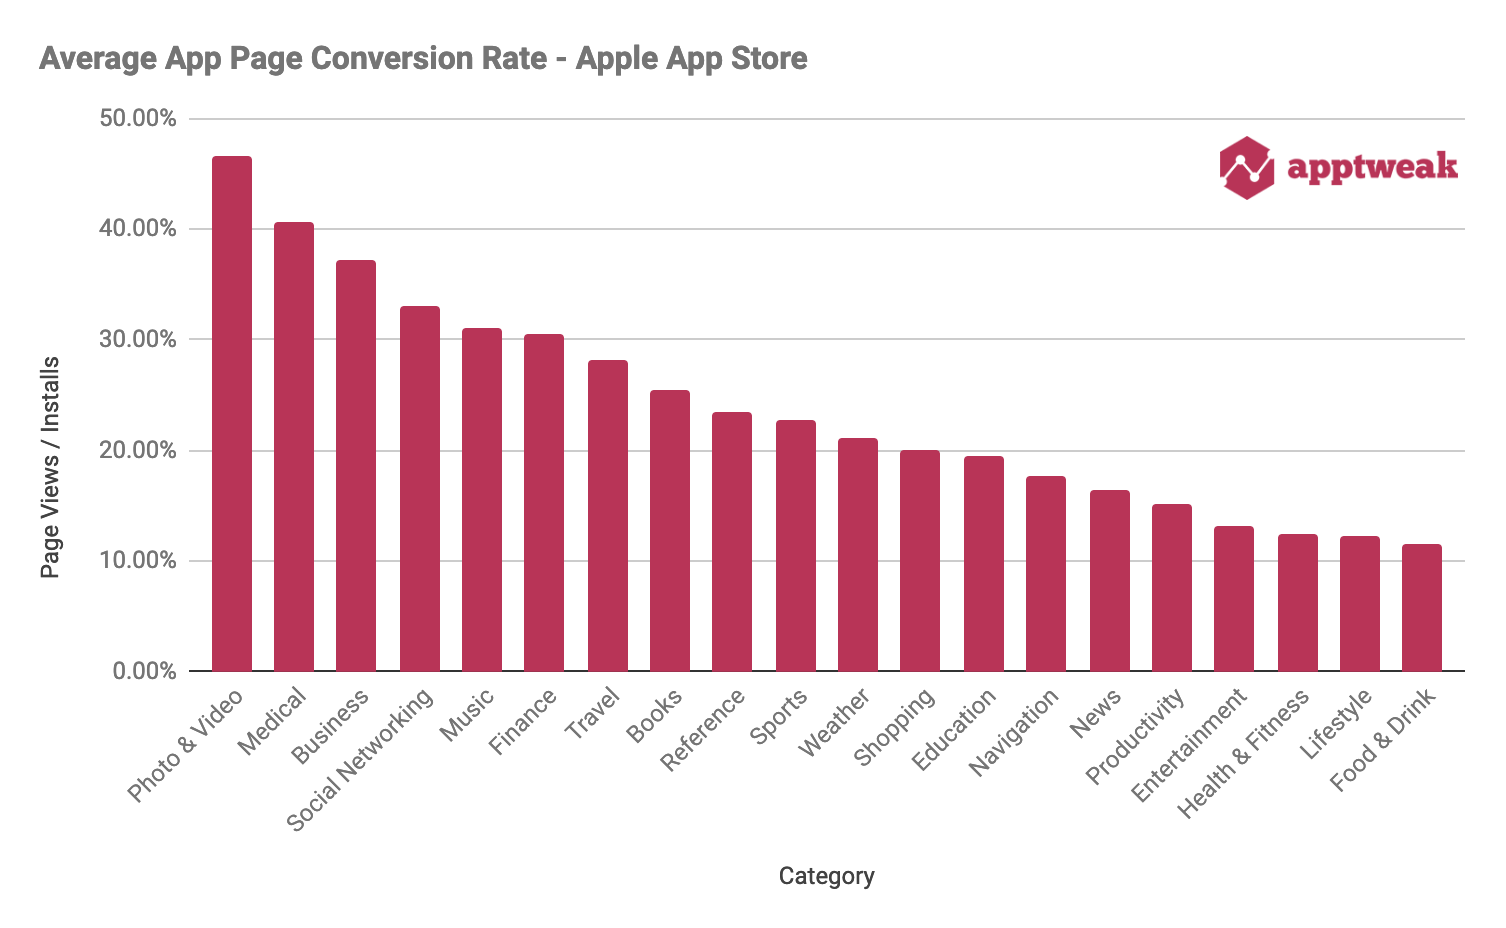 Average App Page Conversion Rate iOS Apple Store is 25.25%